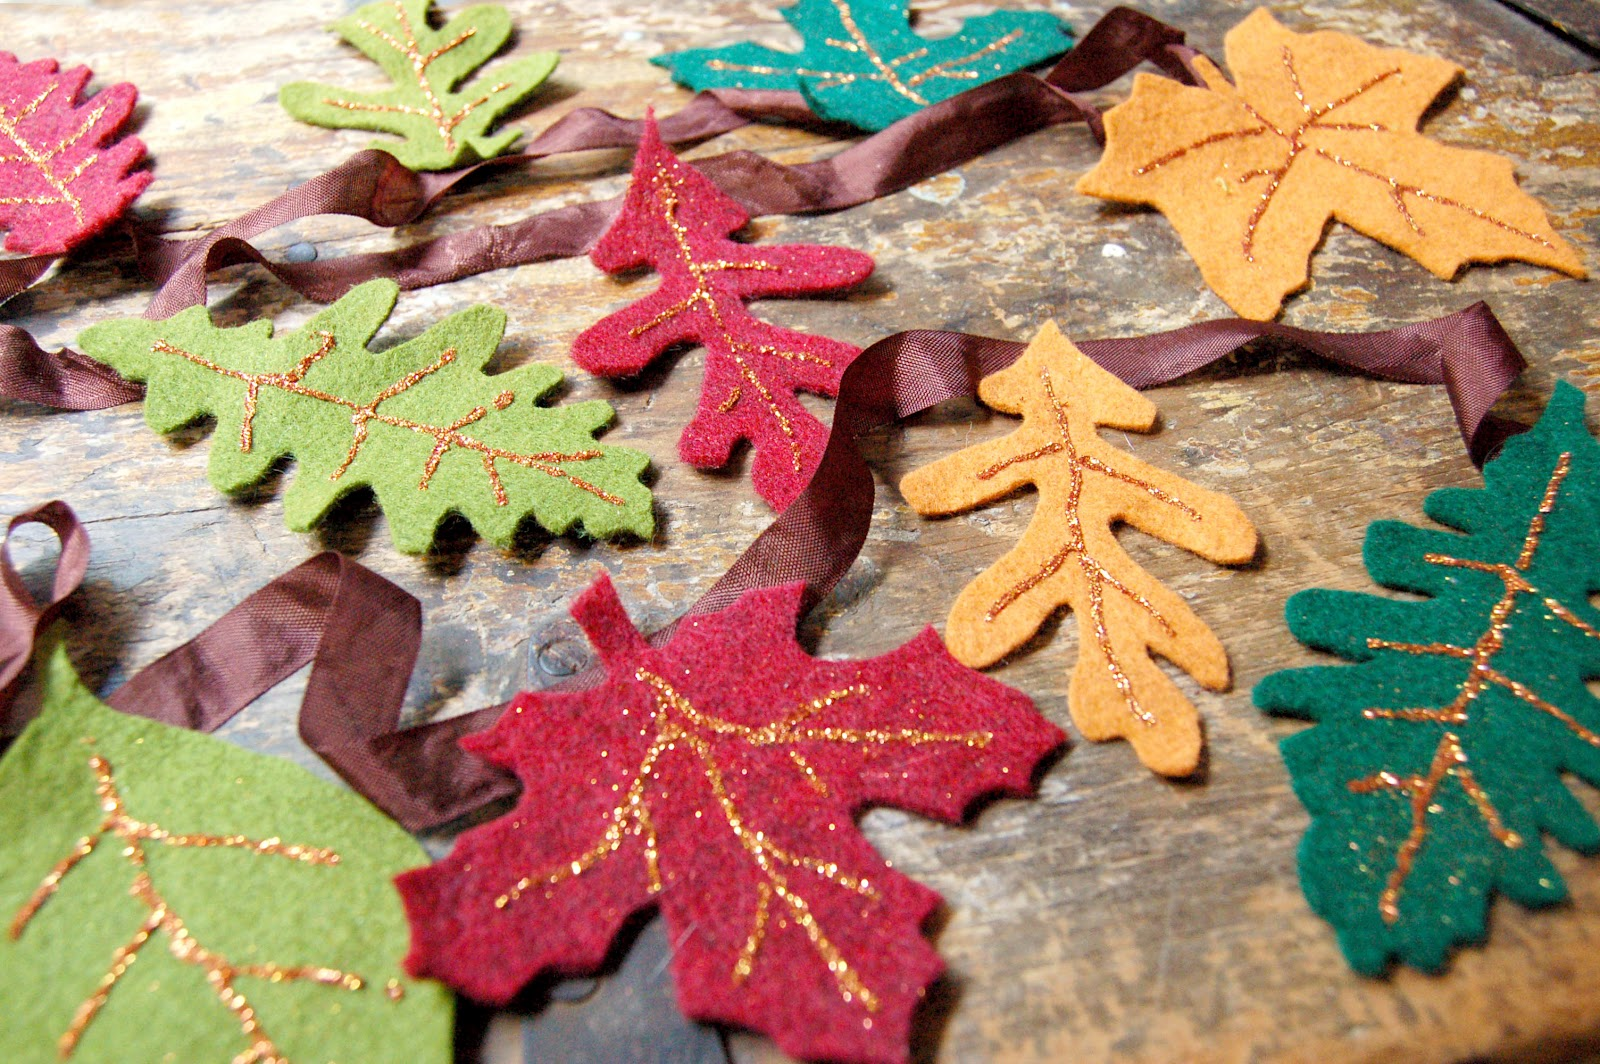 Check It Out And Make Some Easy Fall Decorations With Your Kids!